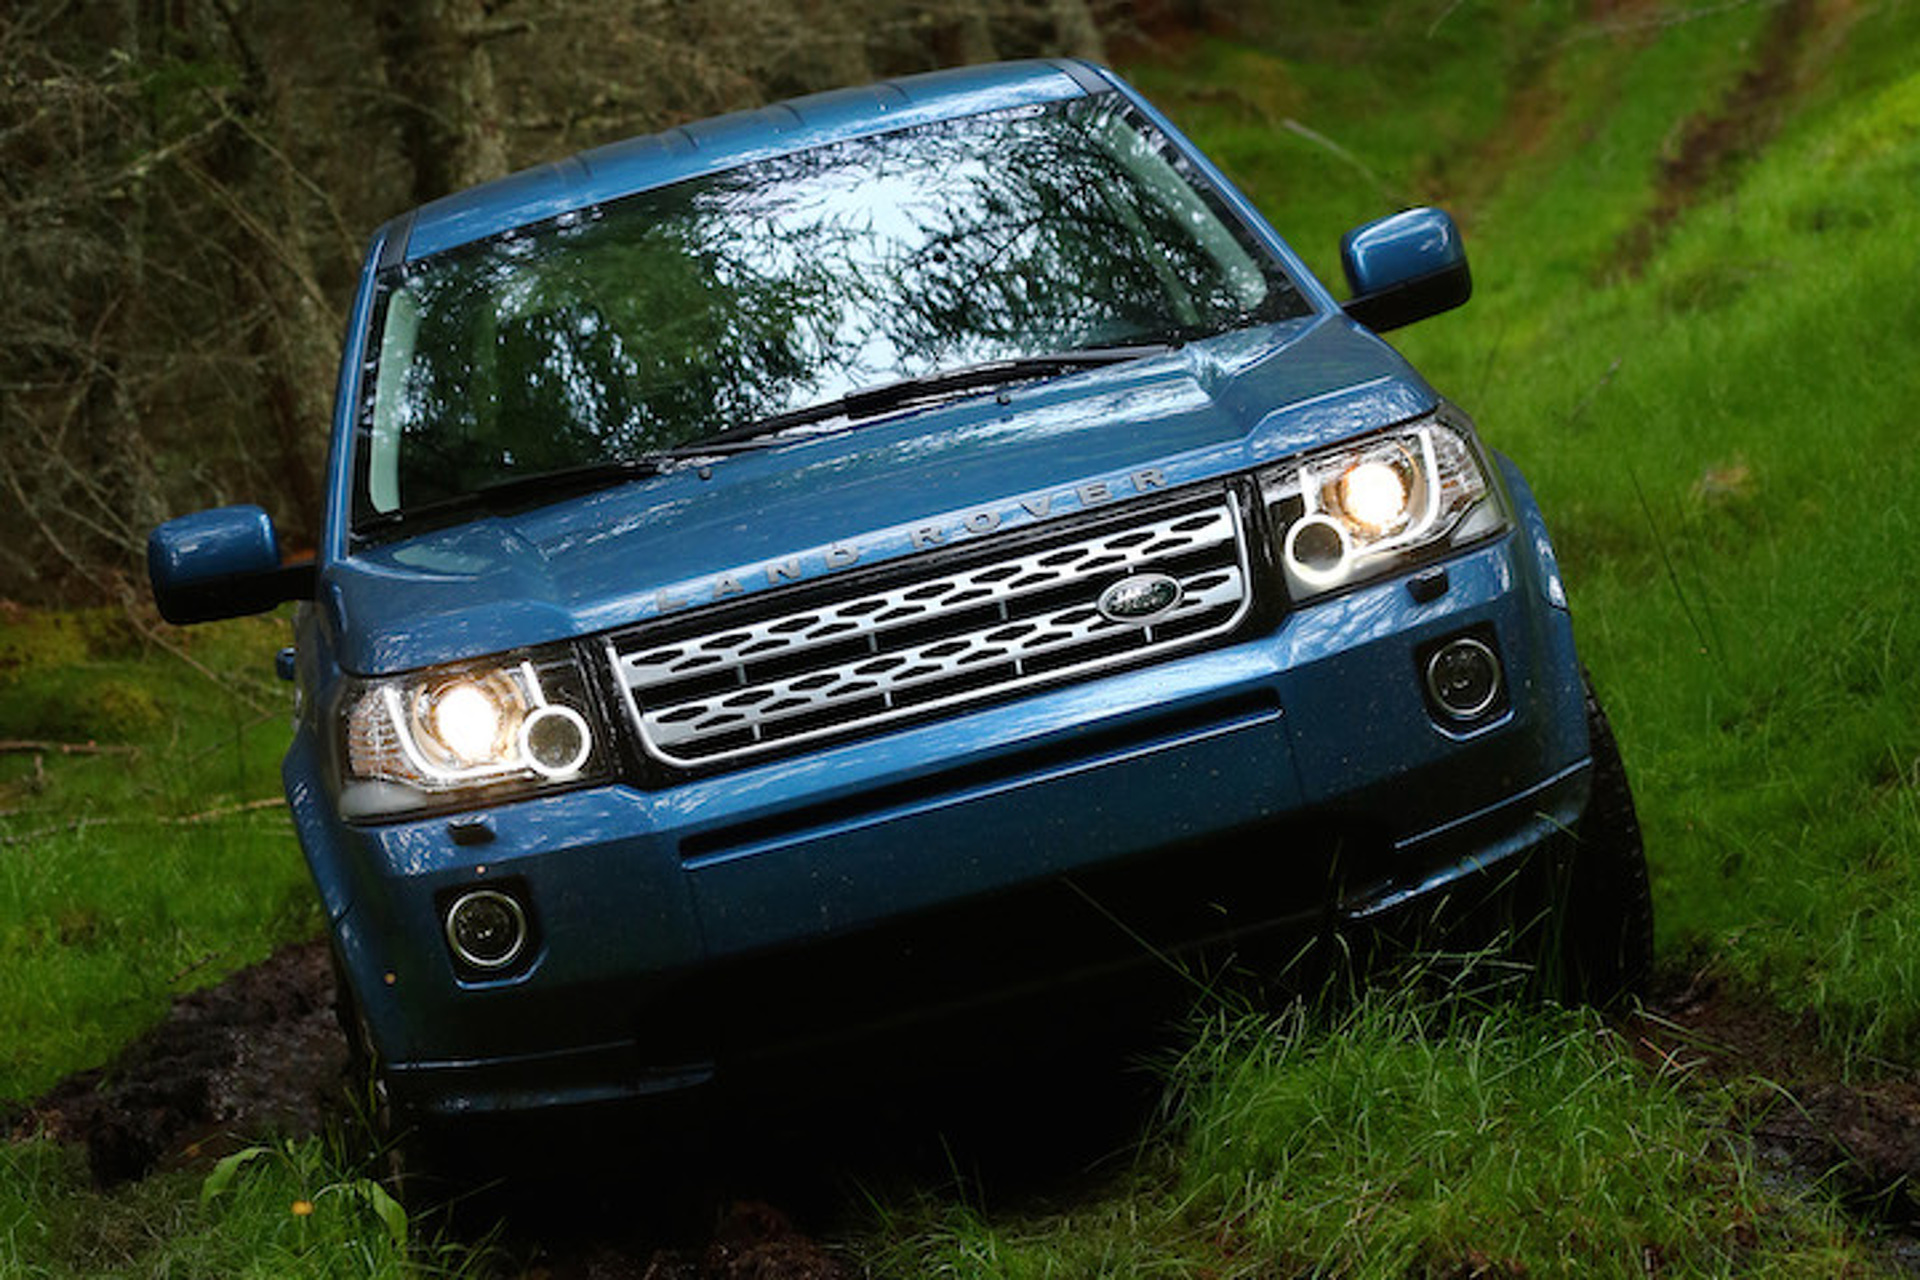 https://icdn-0.motor1.com/images/mgl/xGMe2/s1/land-rover-freelander-to-continue-life-under-tata-nameplate.jpg